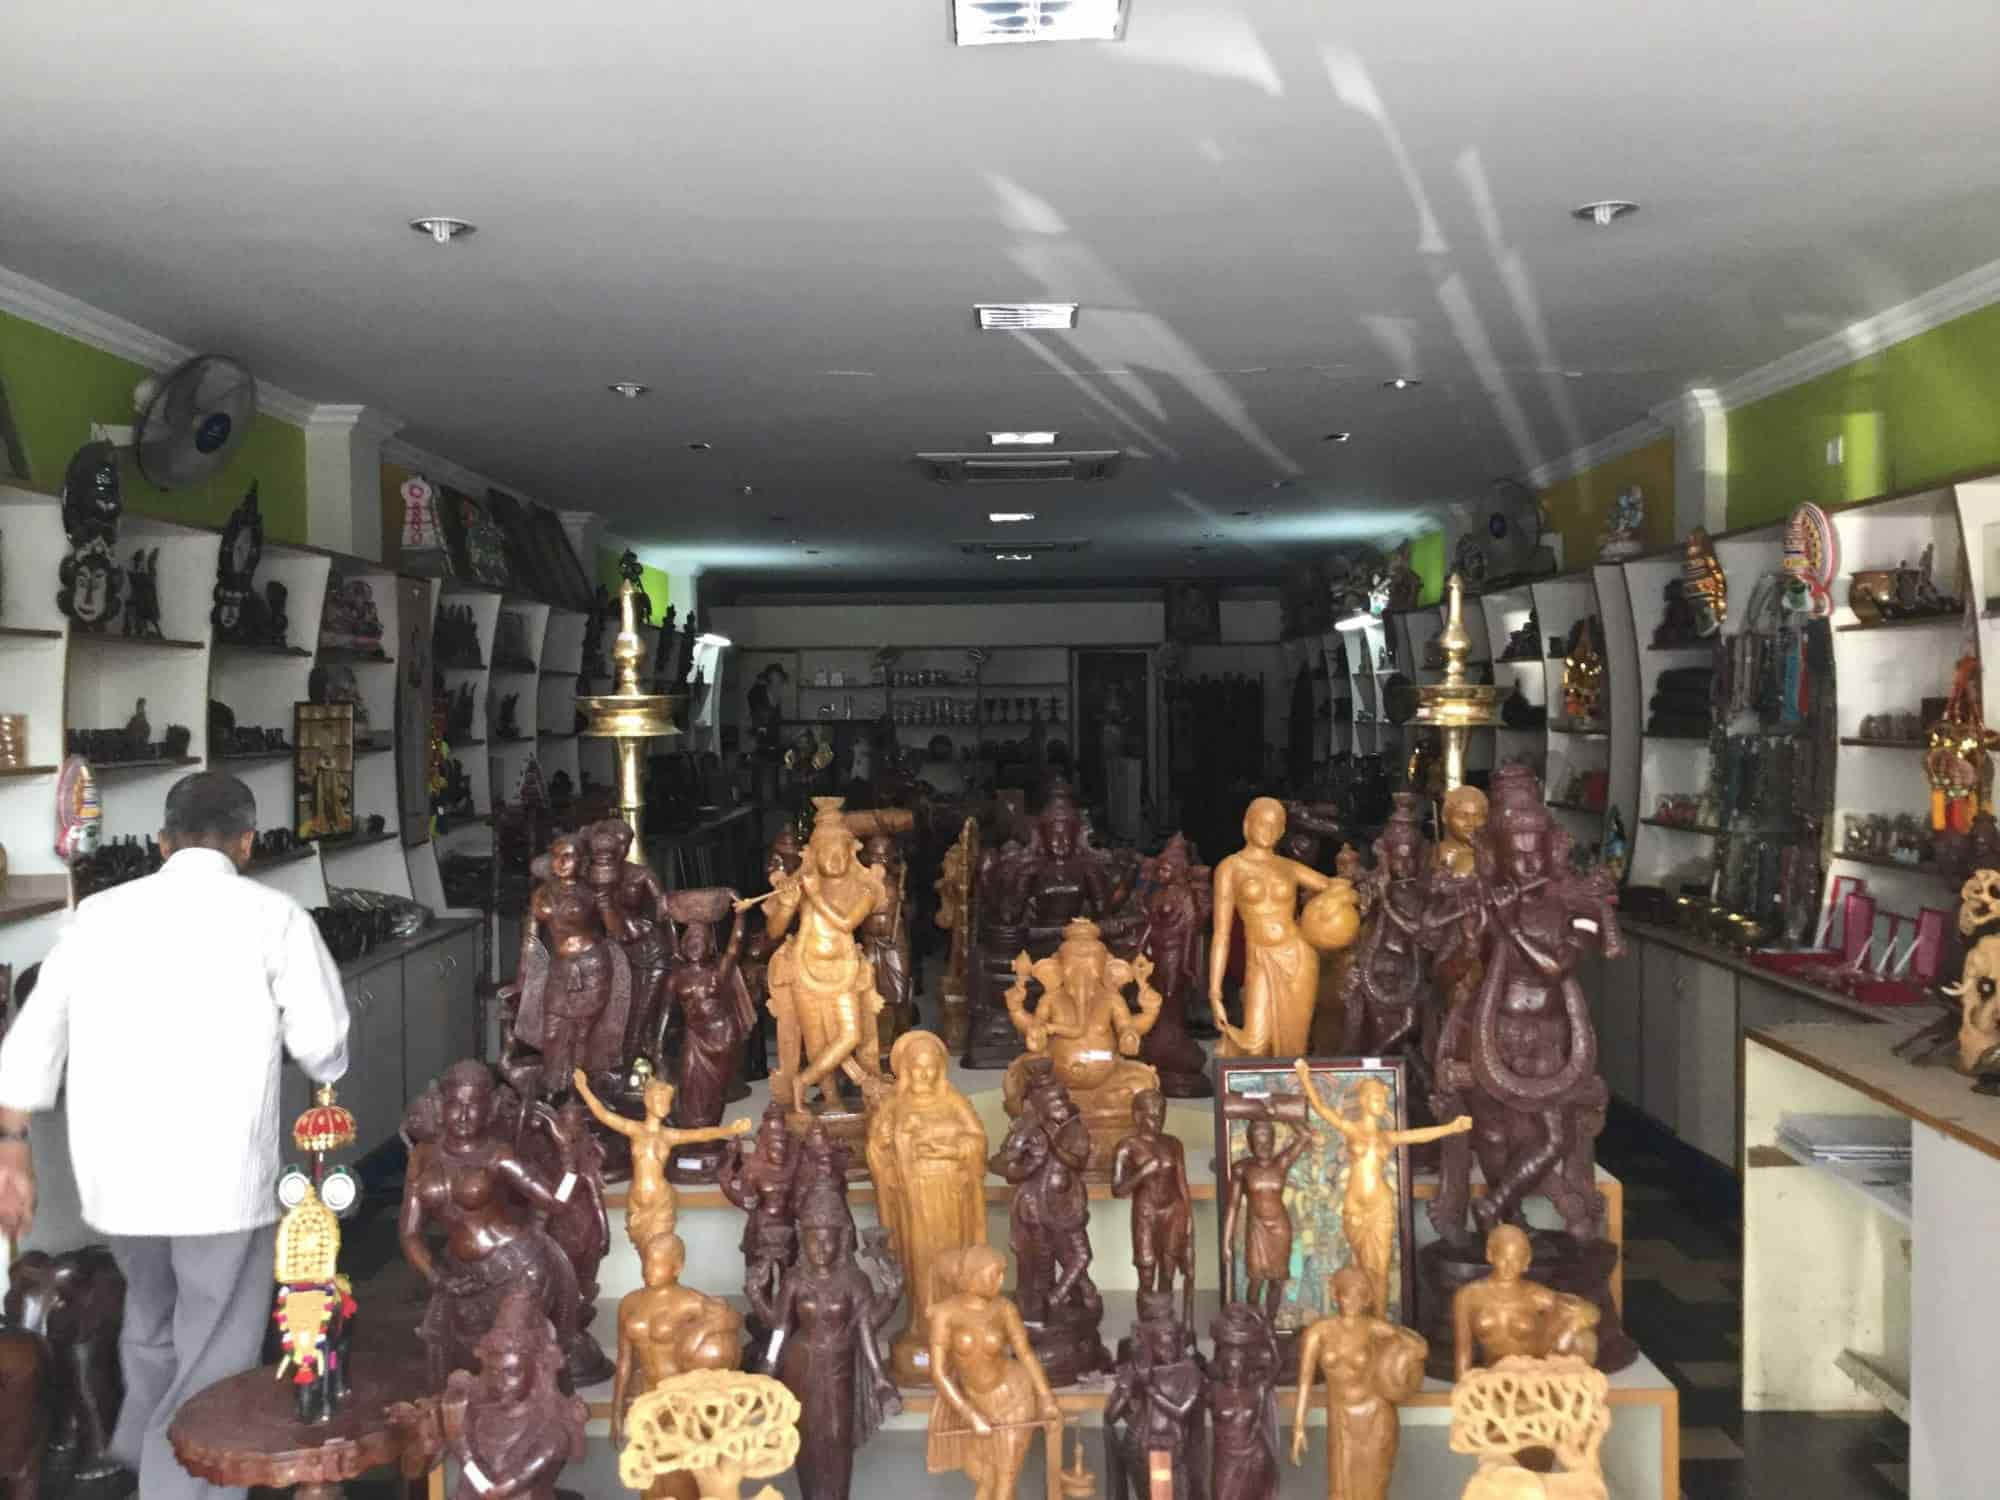 Kairali Mount Road Handicraft Item Dealers In Chennai Justdial